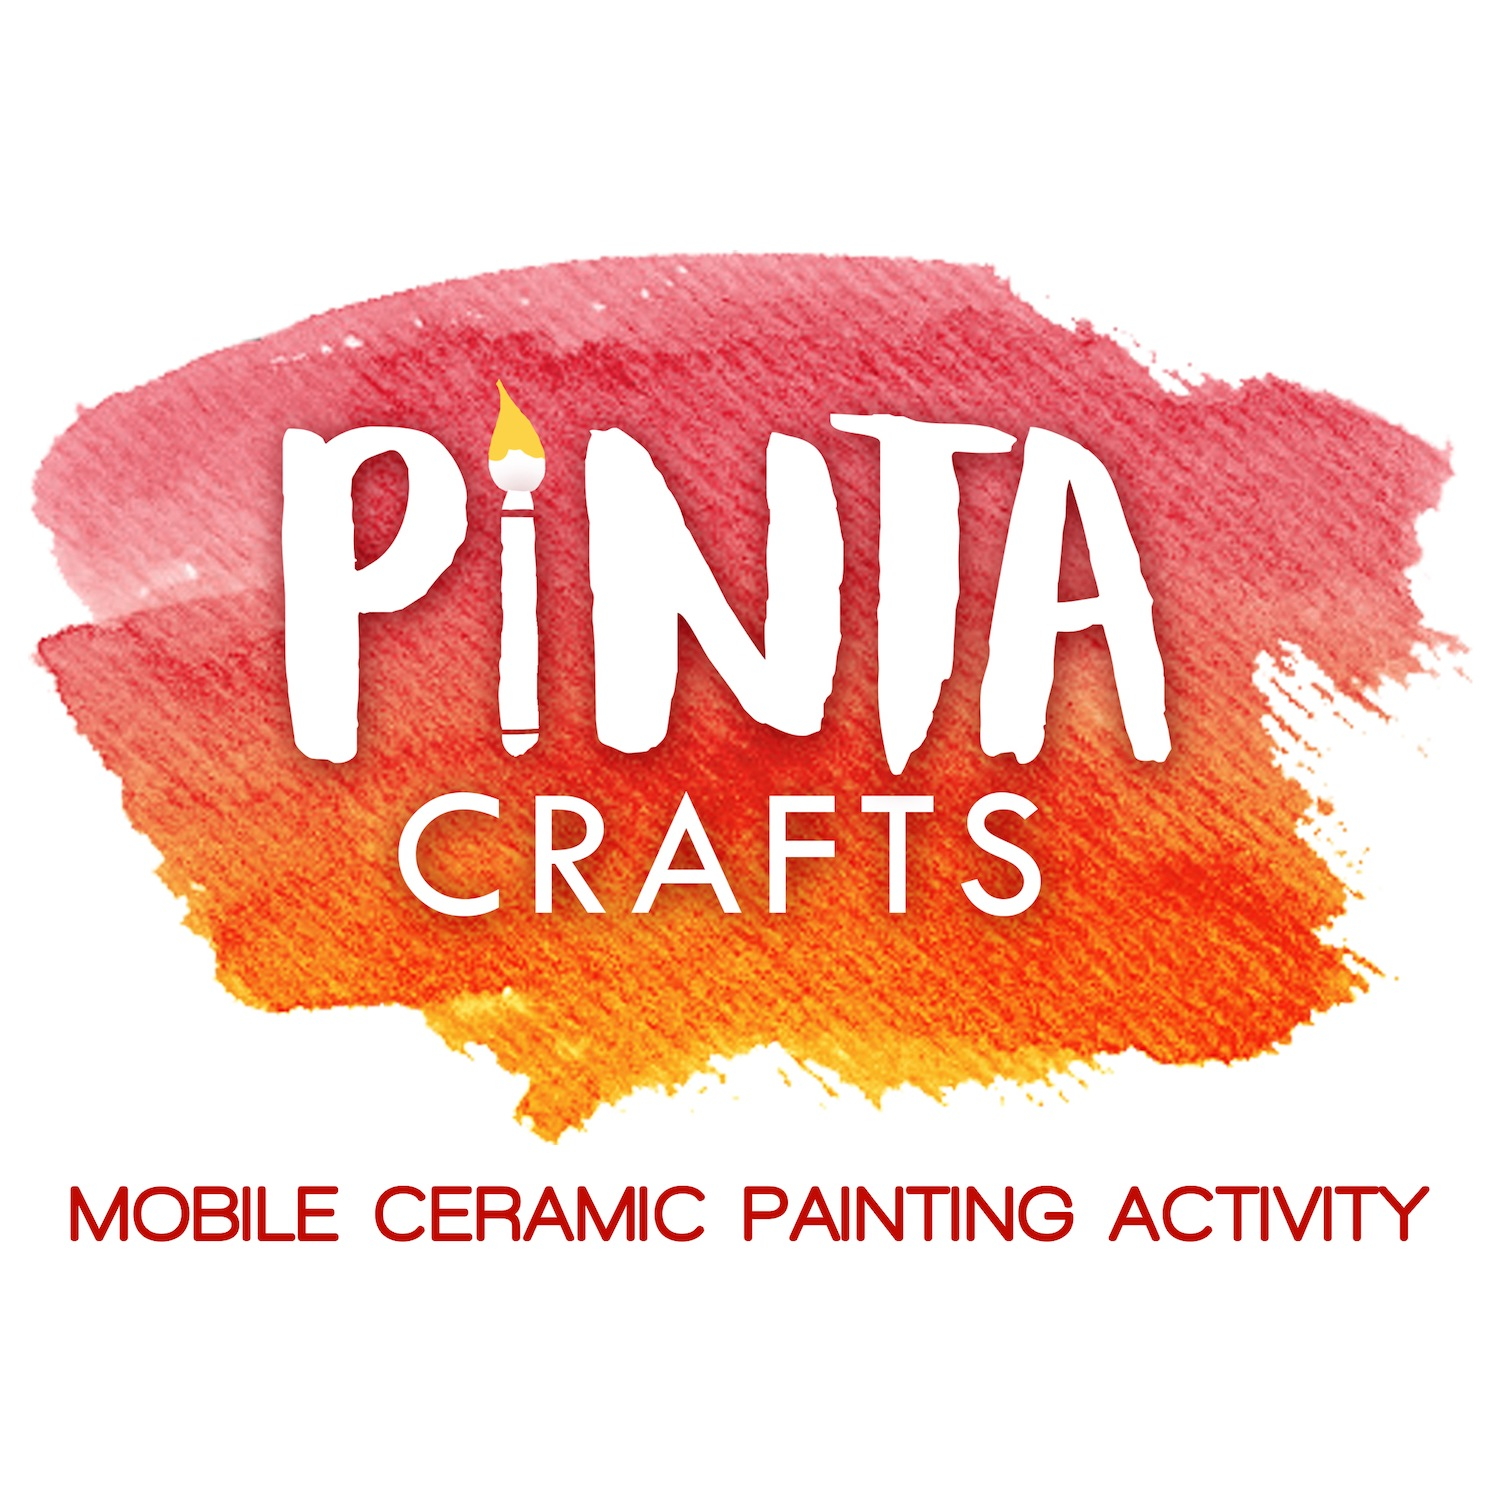 Pinta Crafts - Mobile Ceramic Painting Activity